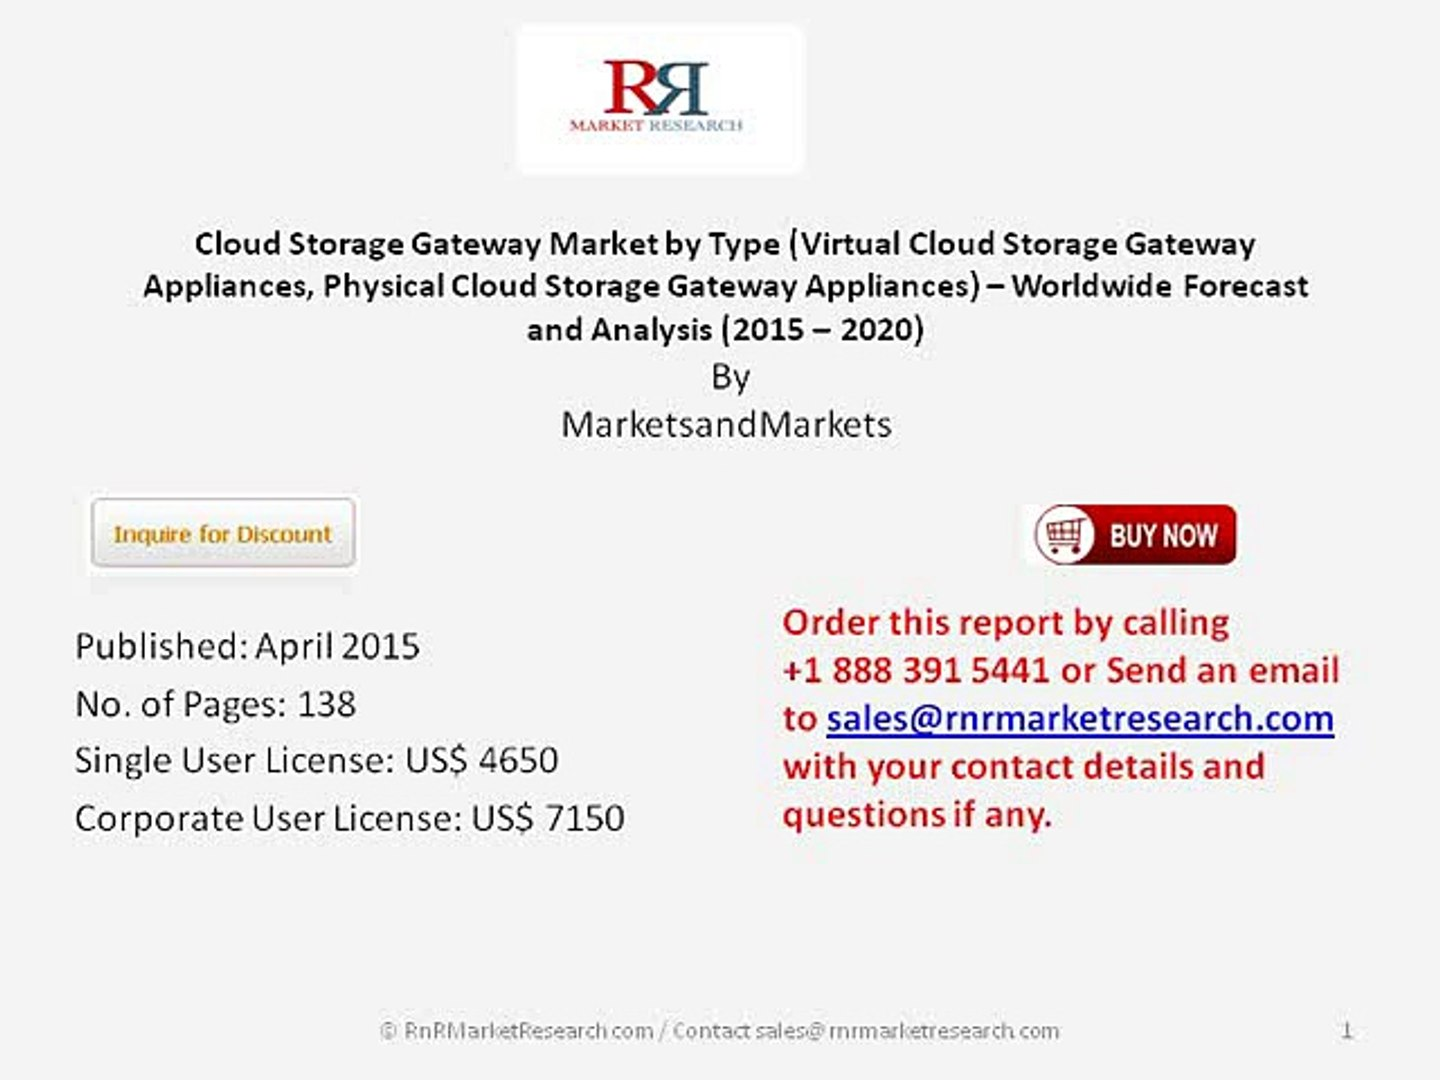 Global Cloud Storage Gateway Market 2020 by market Share and Key Players